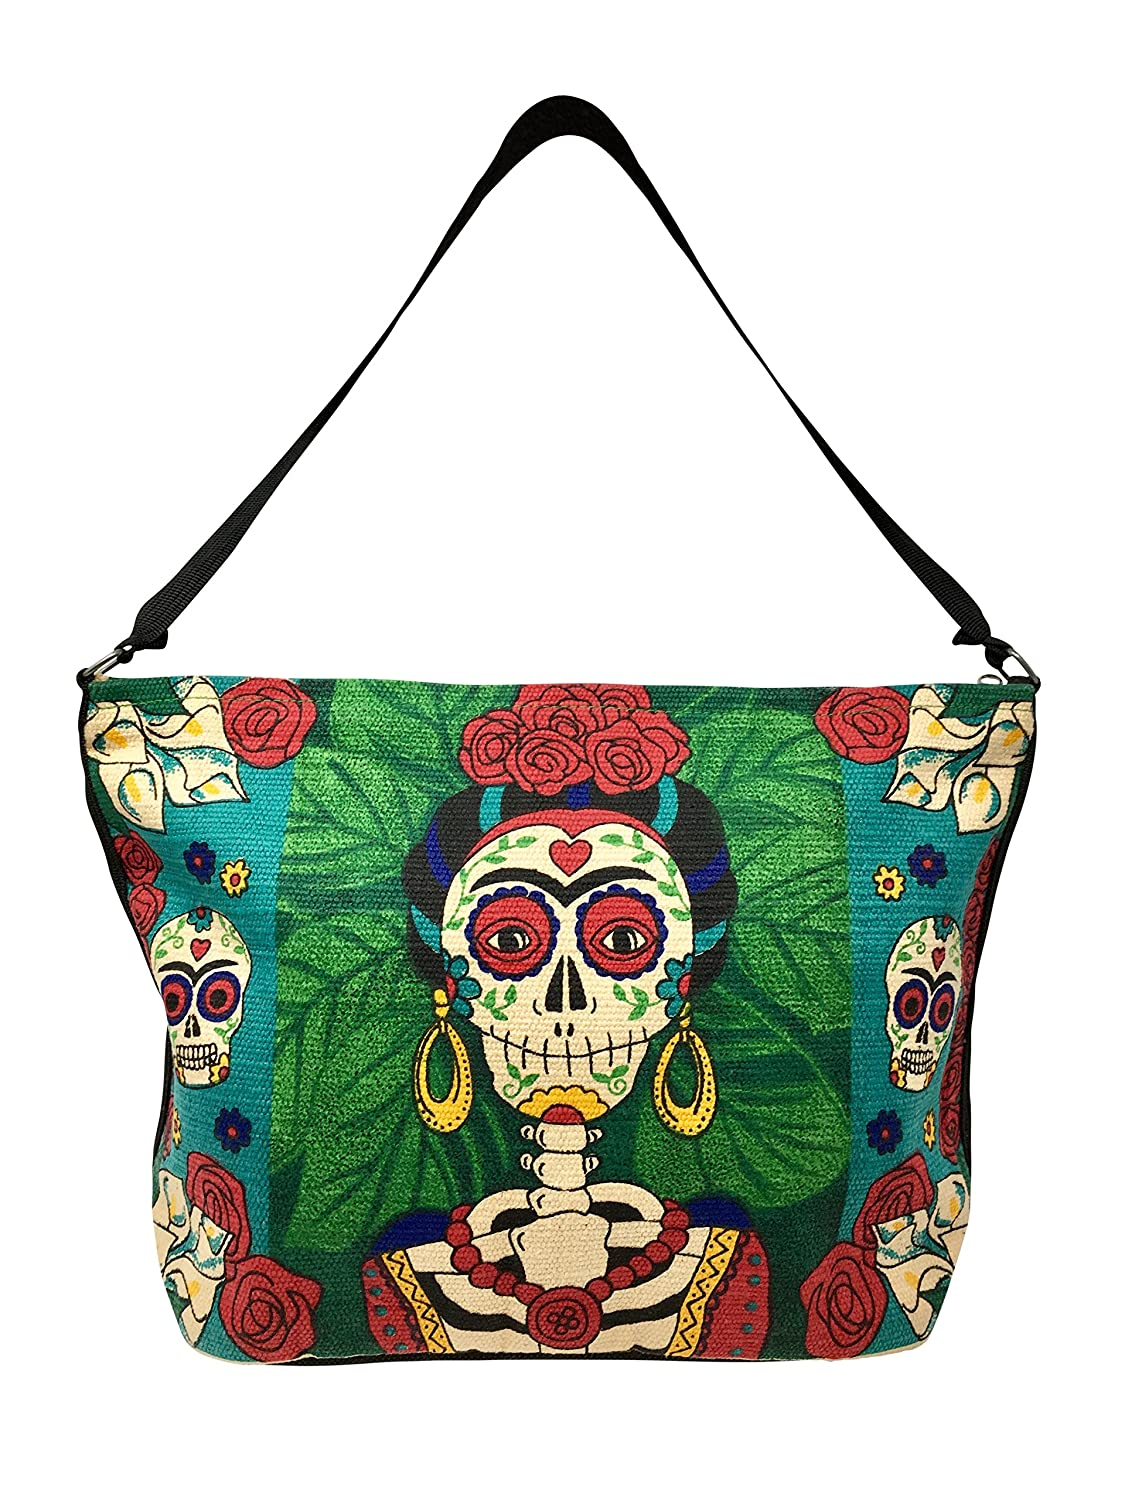 SpiritStar Sugar Skull Purse: Day of the Dead Inspired Daily Travel Bag Made with 100% Cotton